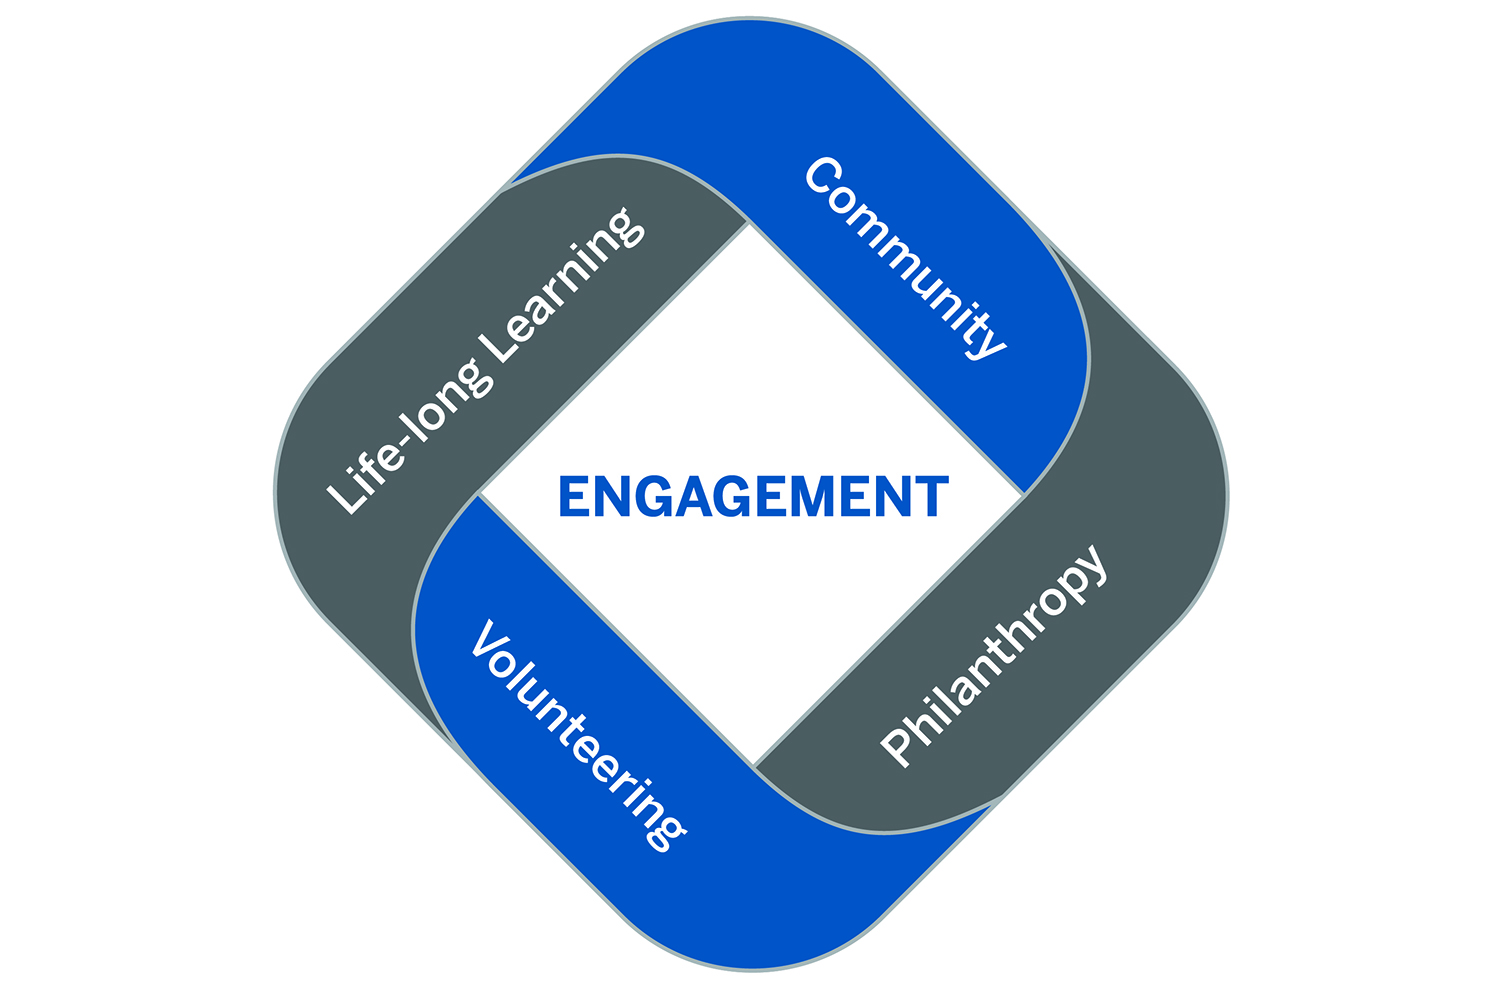 Alumni Engagement model